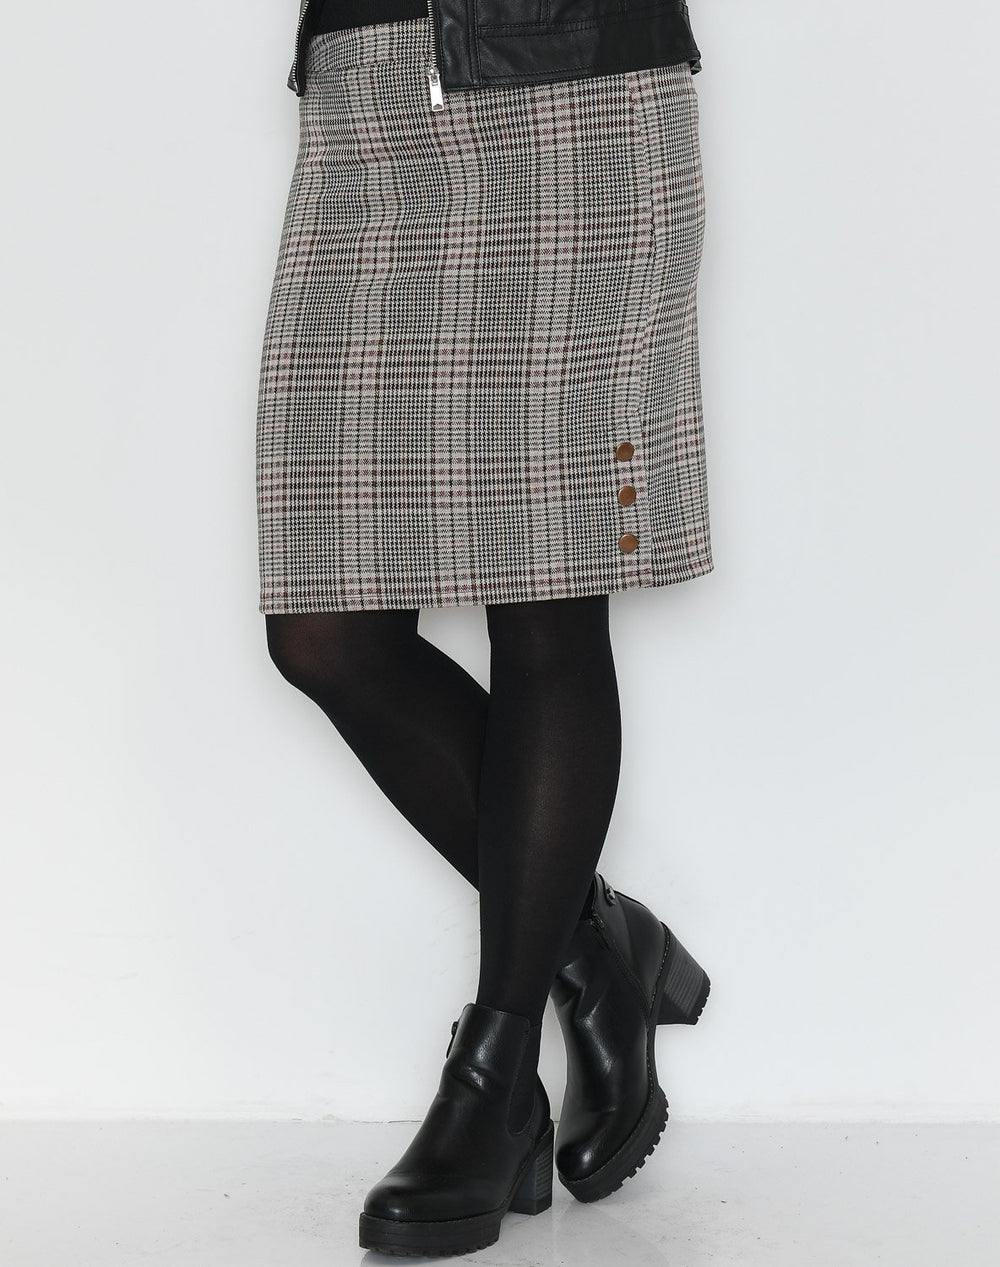 Dranella DRFango 5 short skirt check - Online-Mode